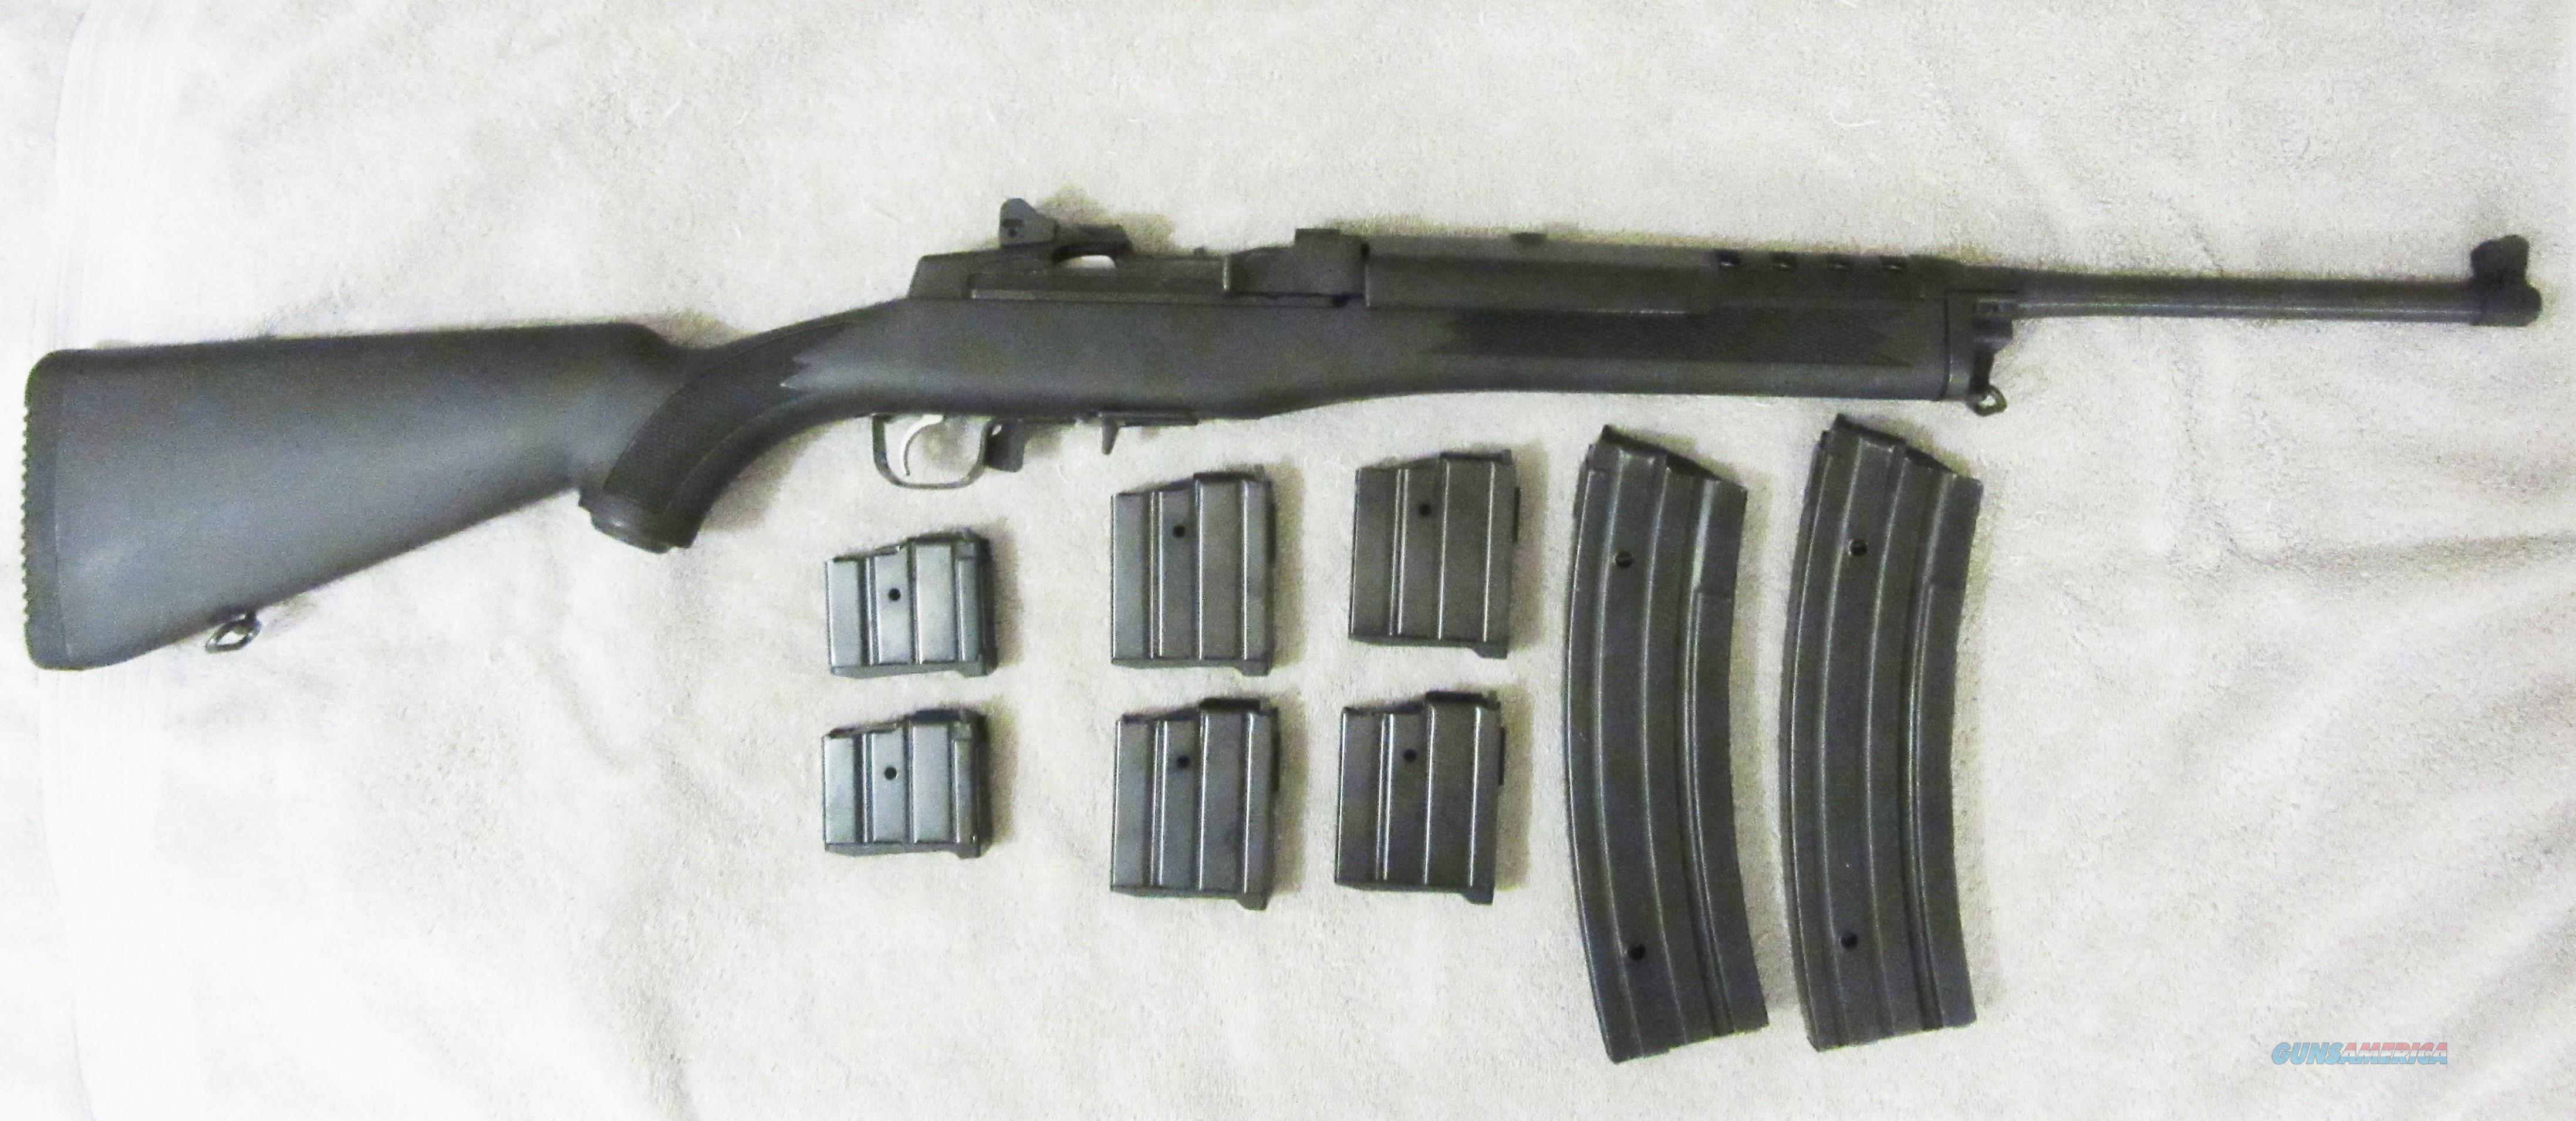 RUGER MINI 14 RANCH RIFLE SYNTHETIC STOCK  Guns > Rifles > Ruger Rifles > Mini-14 Type